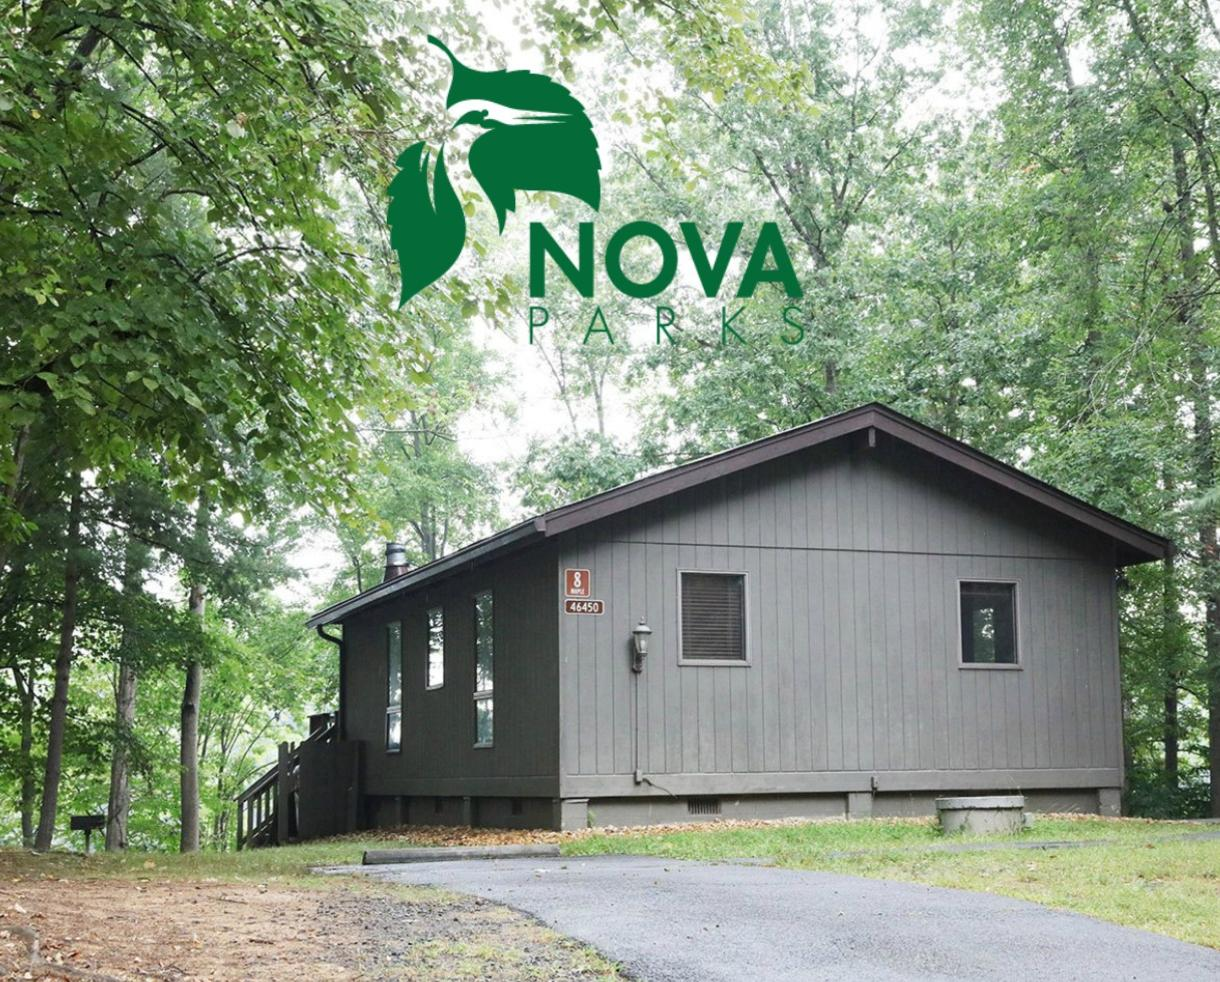 $200+ for 2-Night Weekday Riverfront Cottage Rental at Algonkian Regional Park in Northern VA - Up to FIVE BEDROOMS (Up to 50% Off)